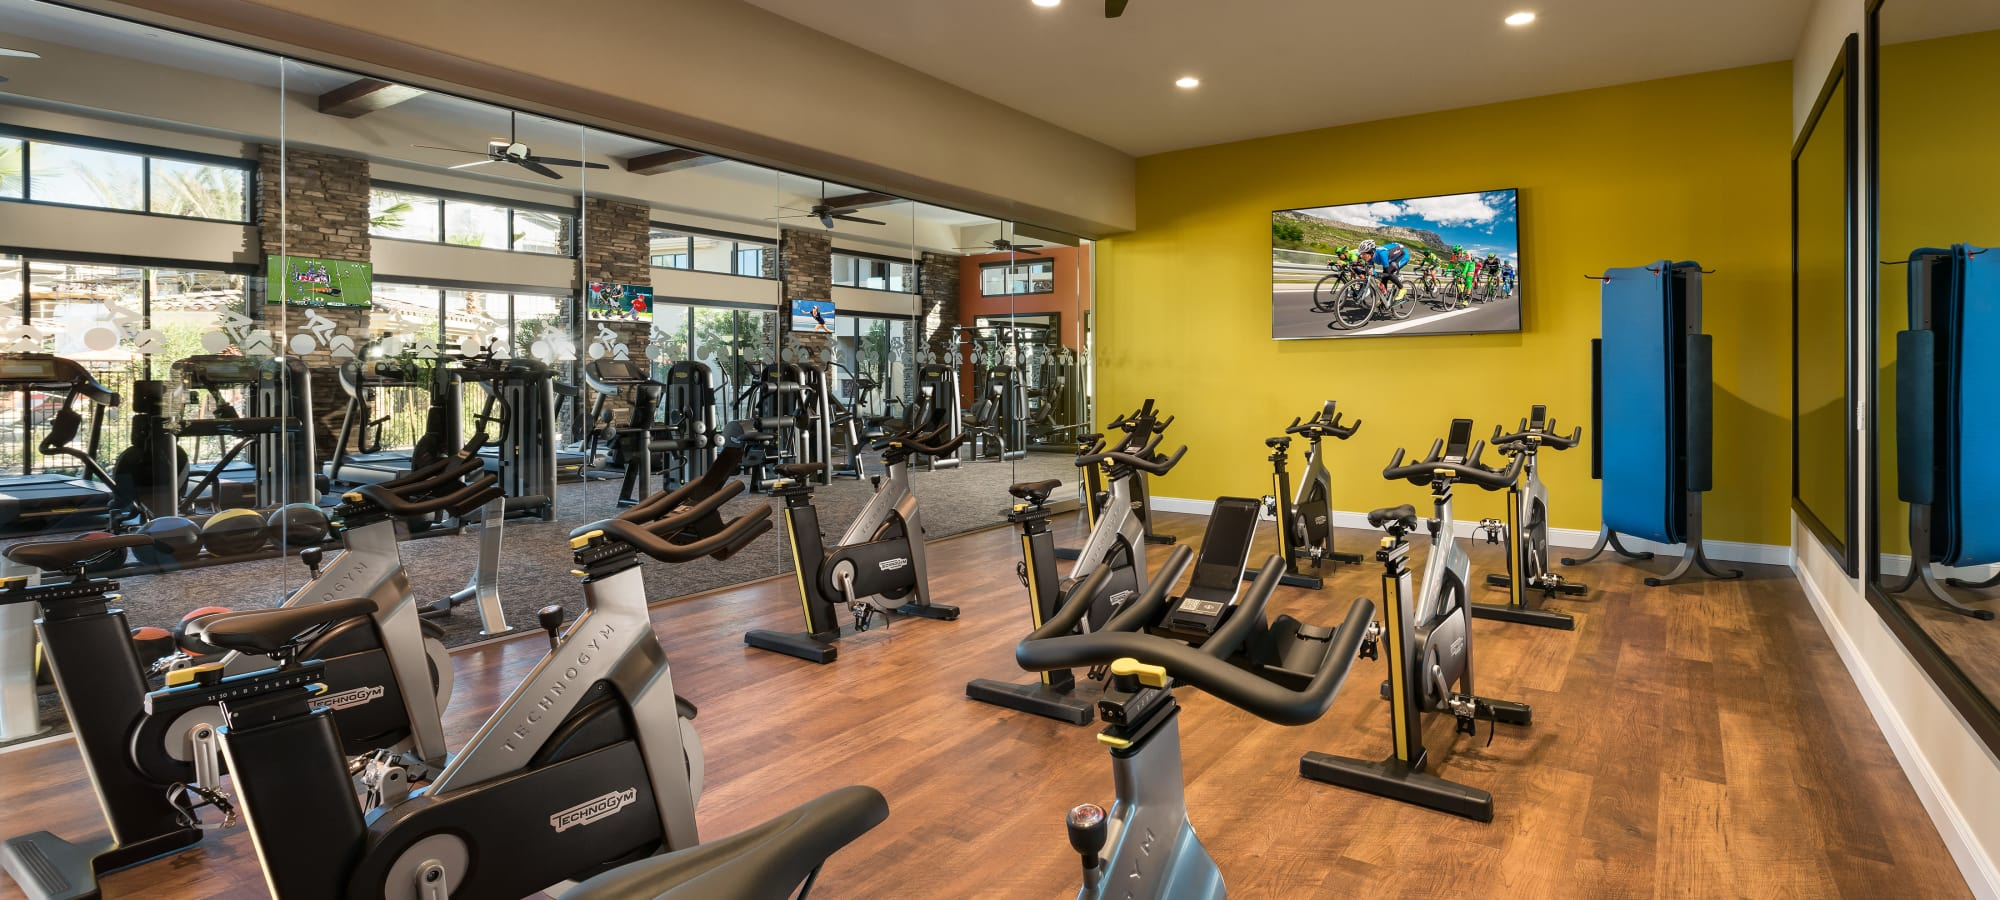 Spin class room at San Villante in Mesa, Arizona